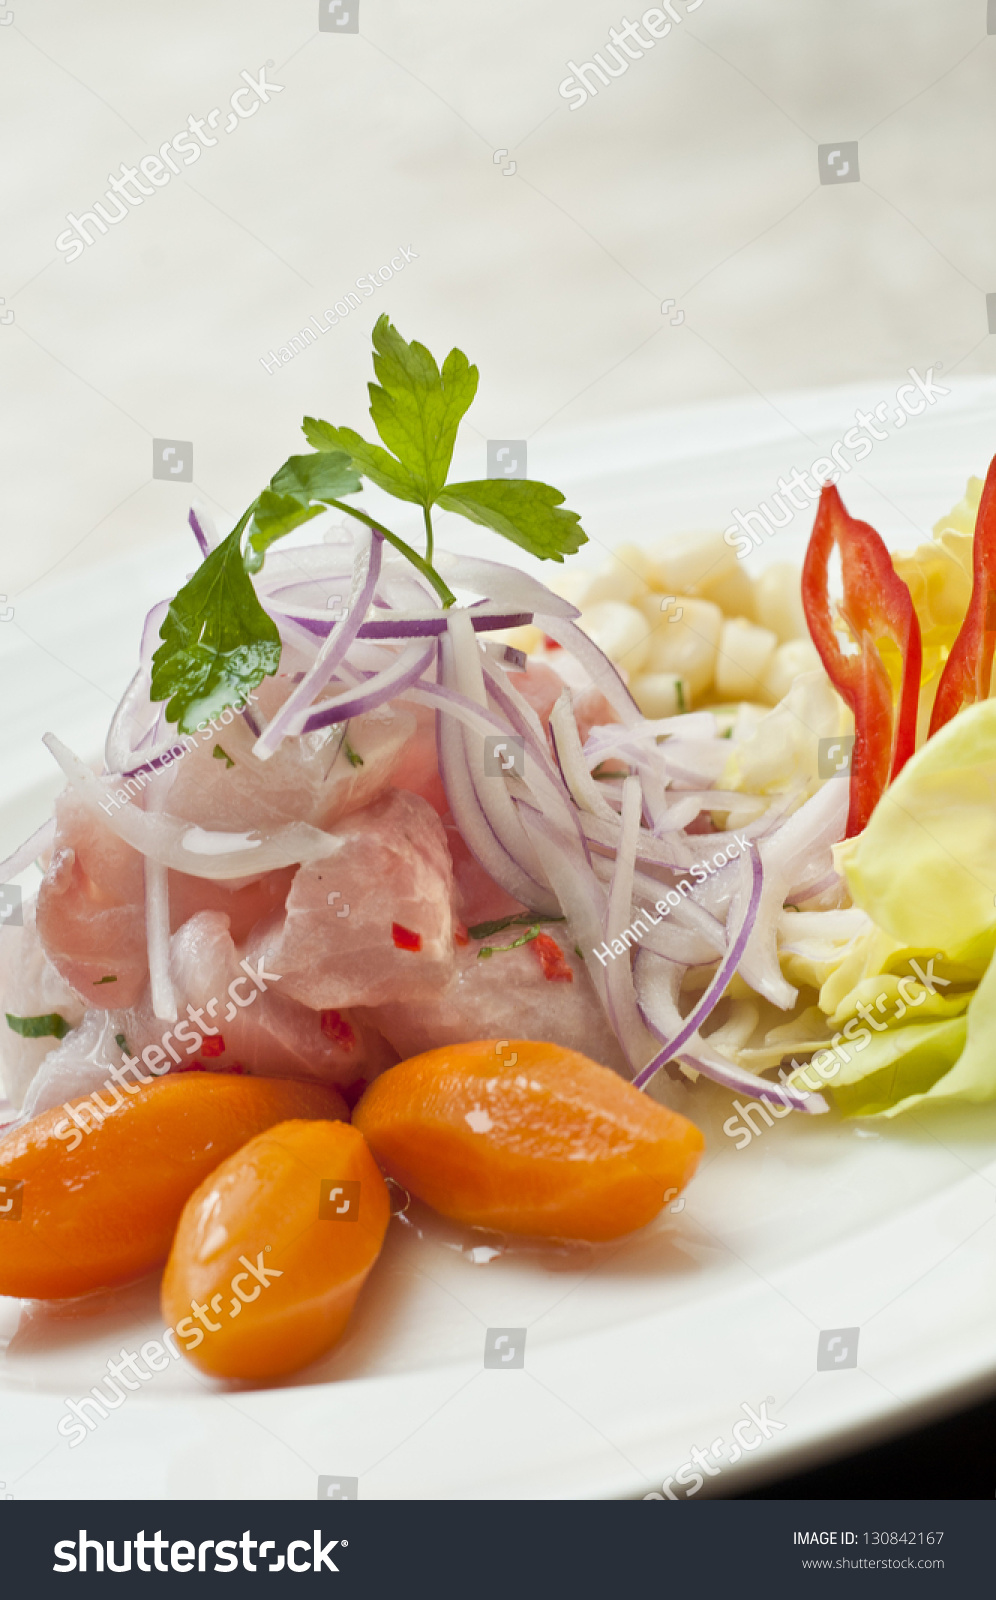 Ceviche Peruano Peruvian Ceviche Stock Photo Edit Now 130842167